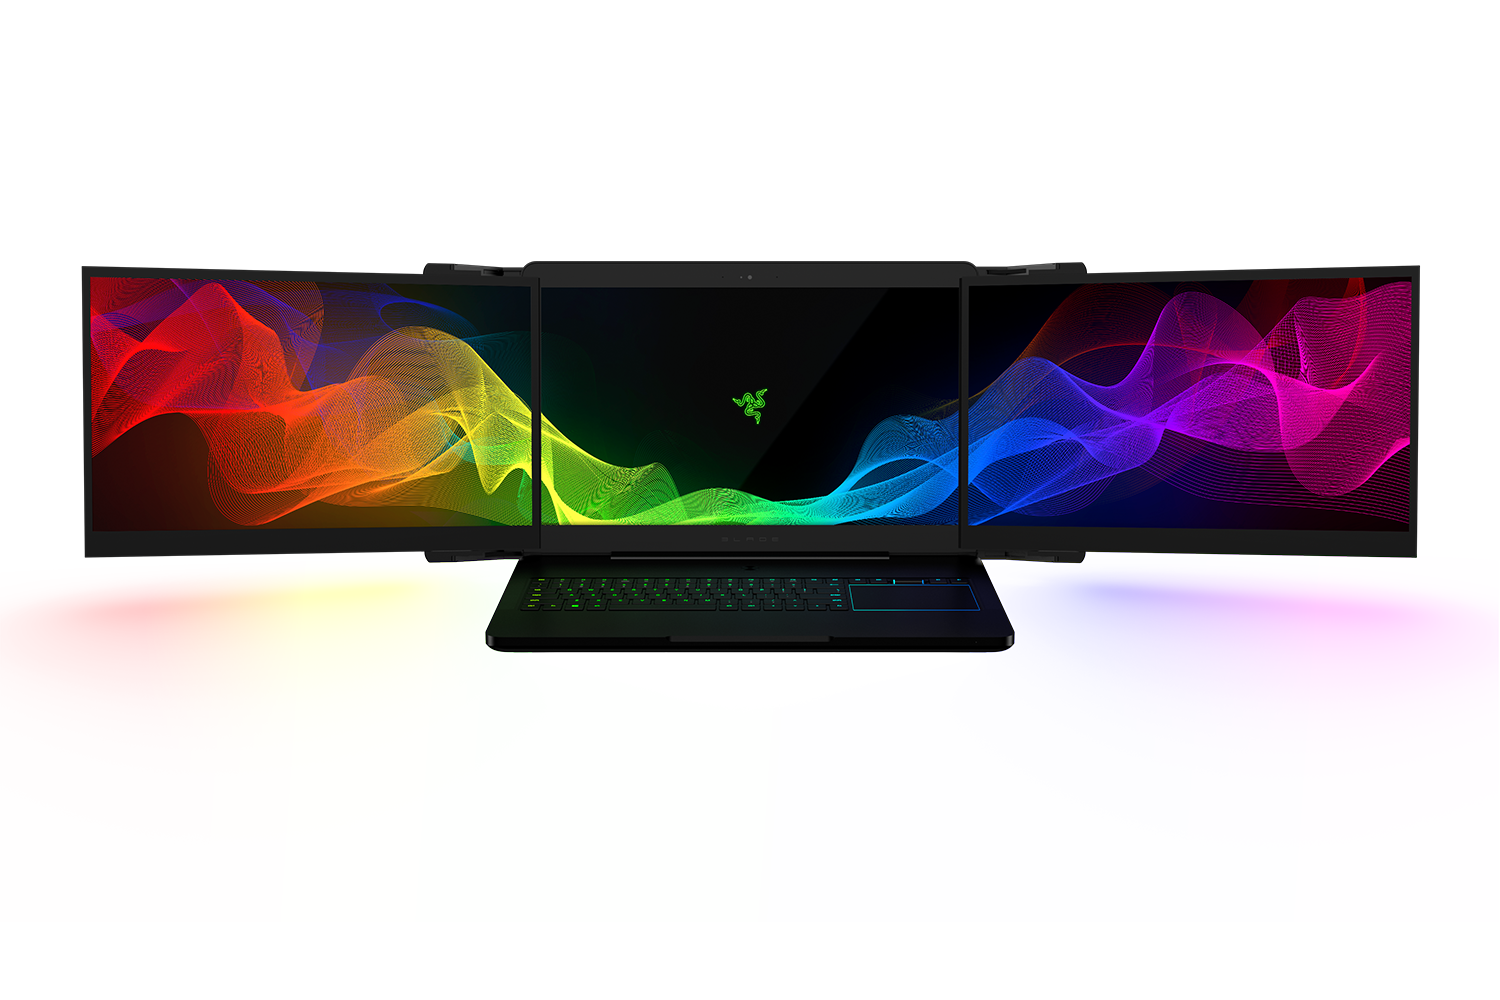 Razer project valerie triple. Briefcase transparent display image freeuse download